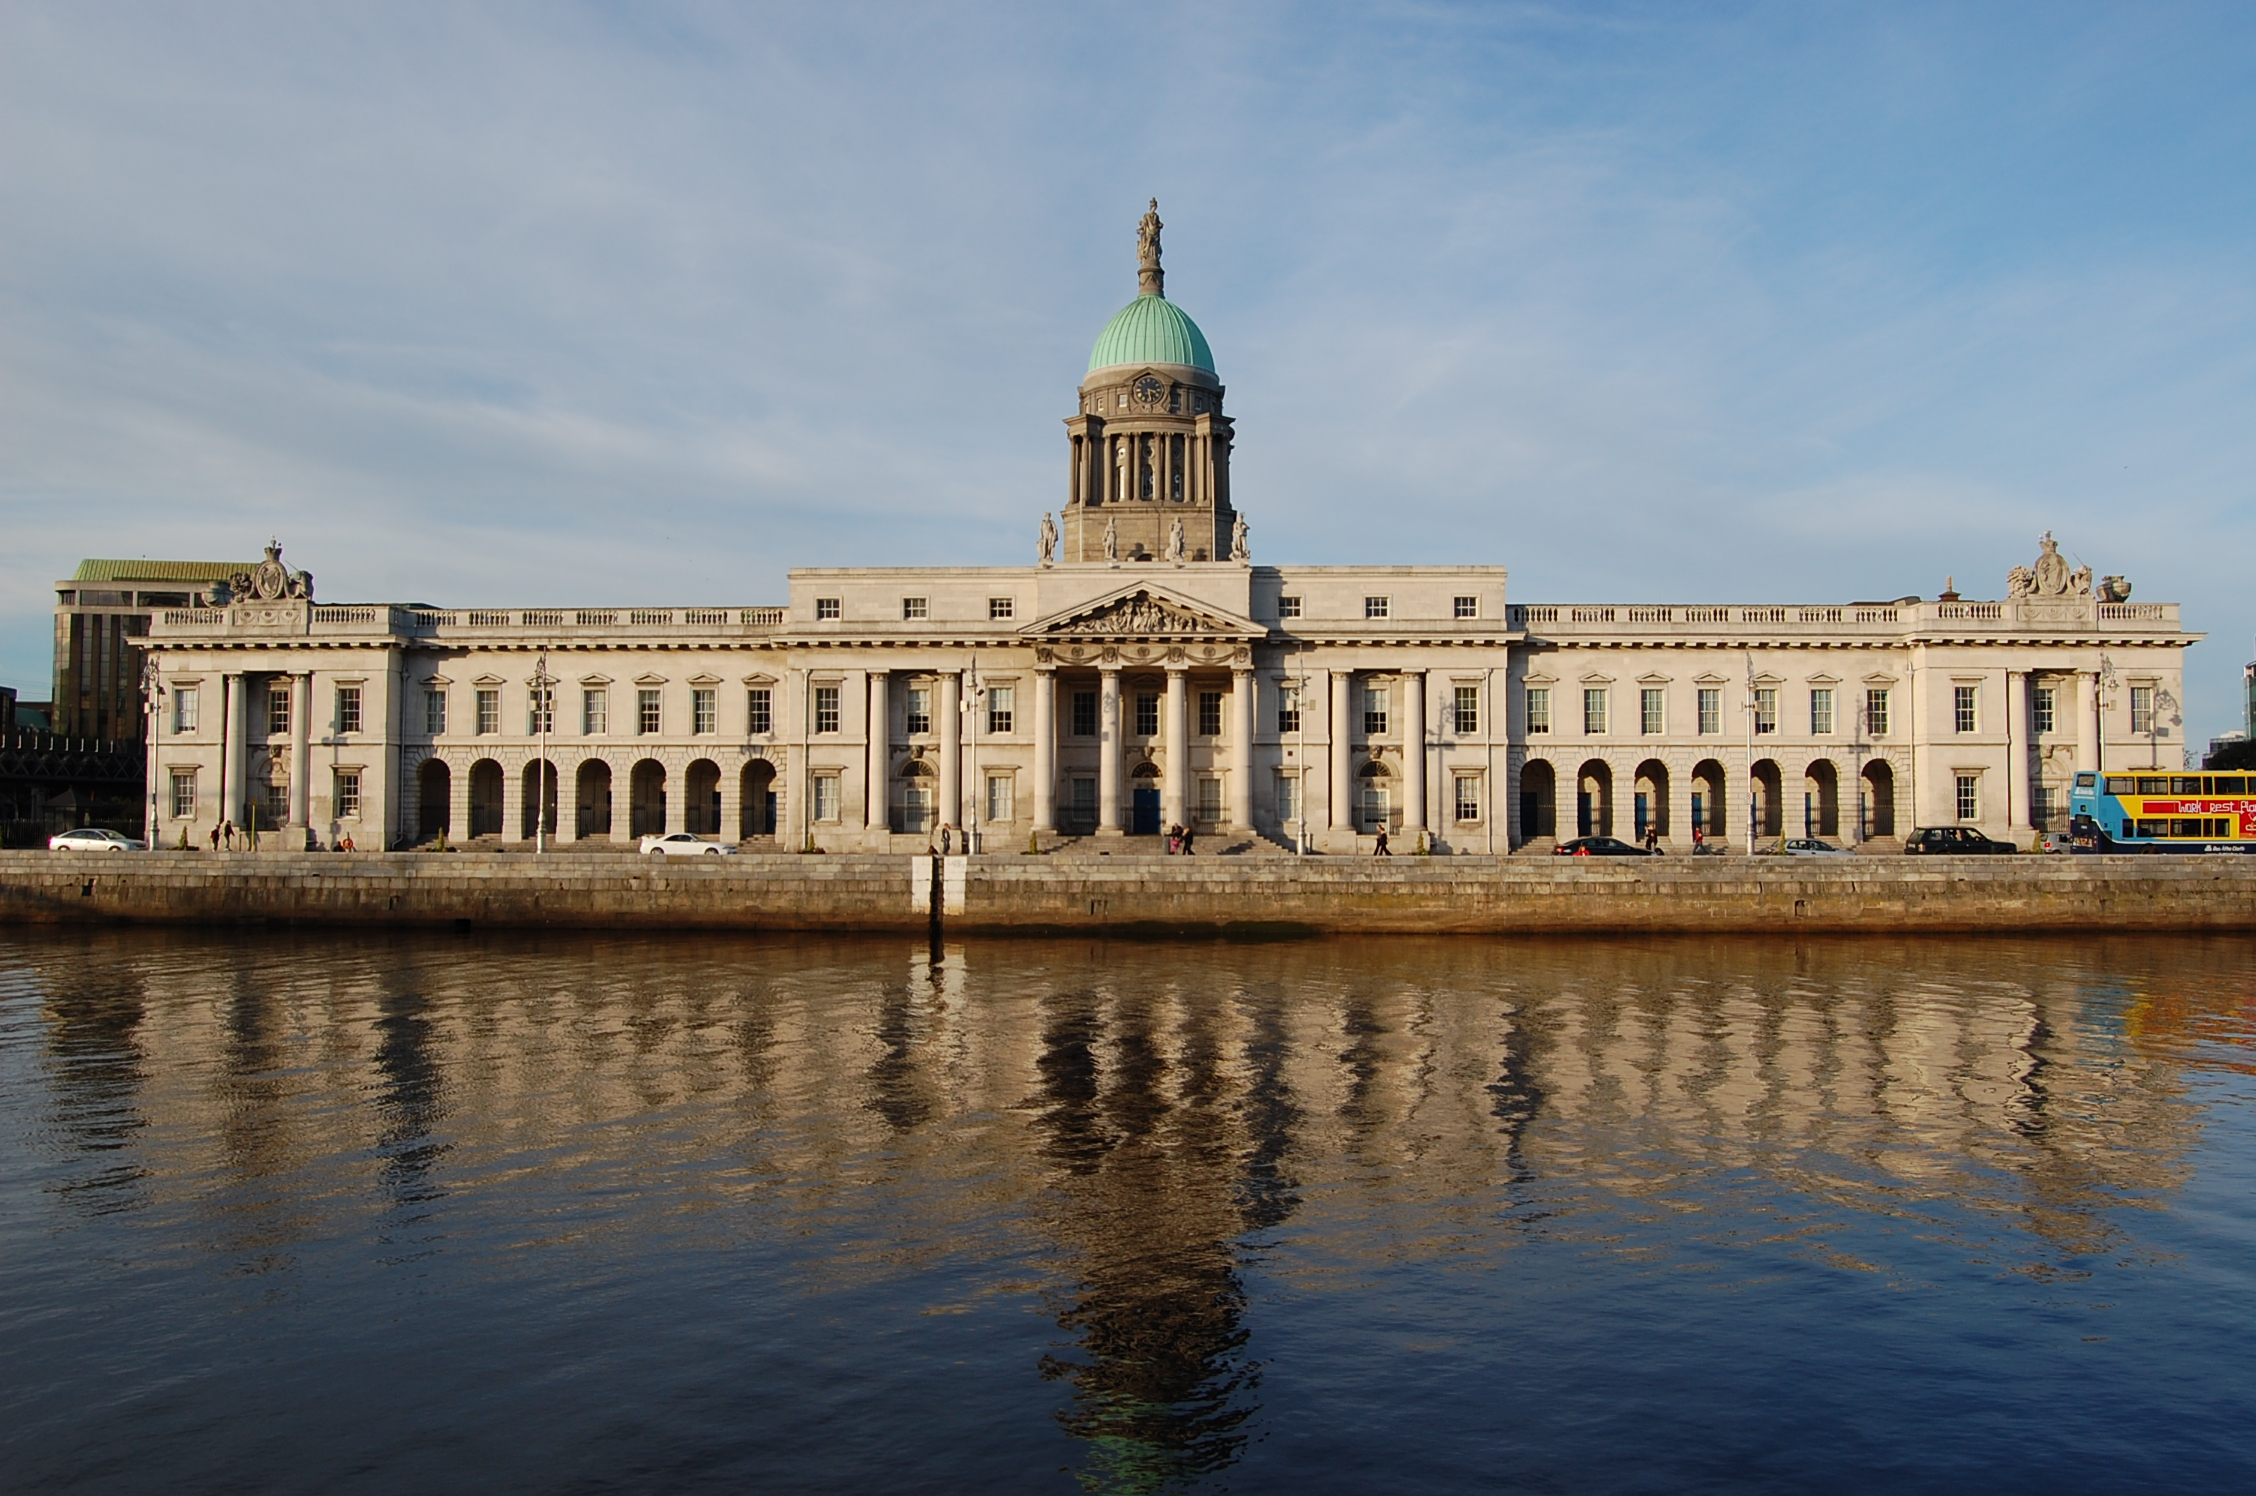 Dublin custom house photo